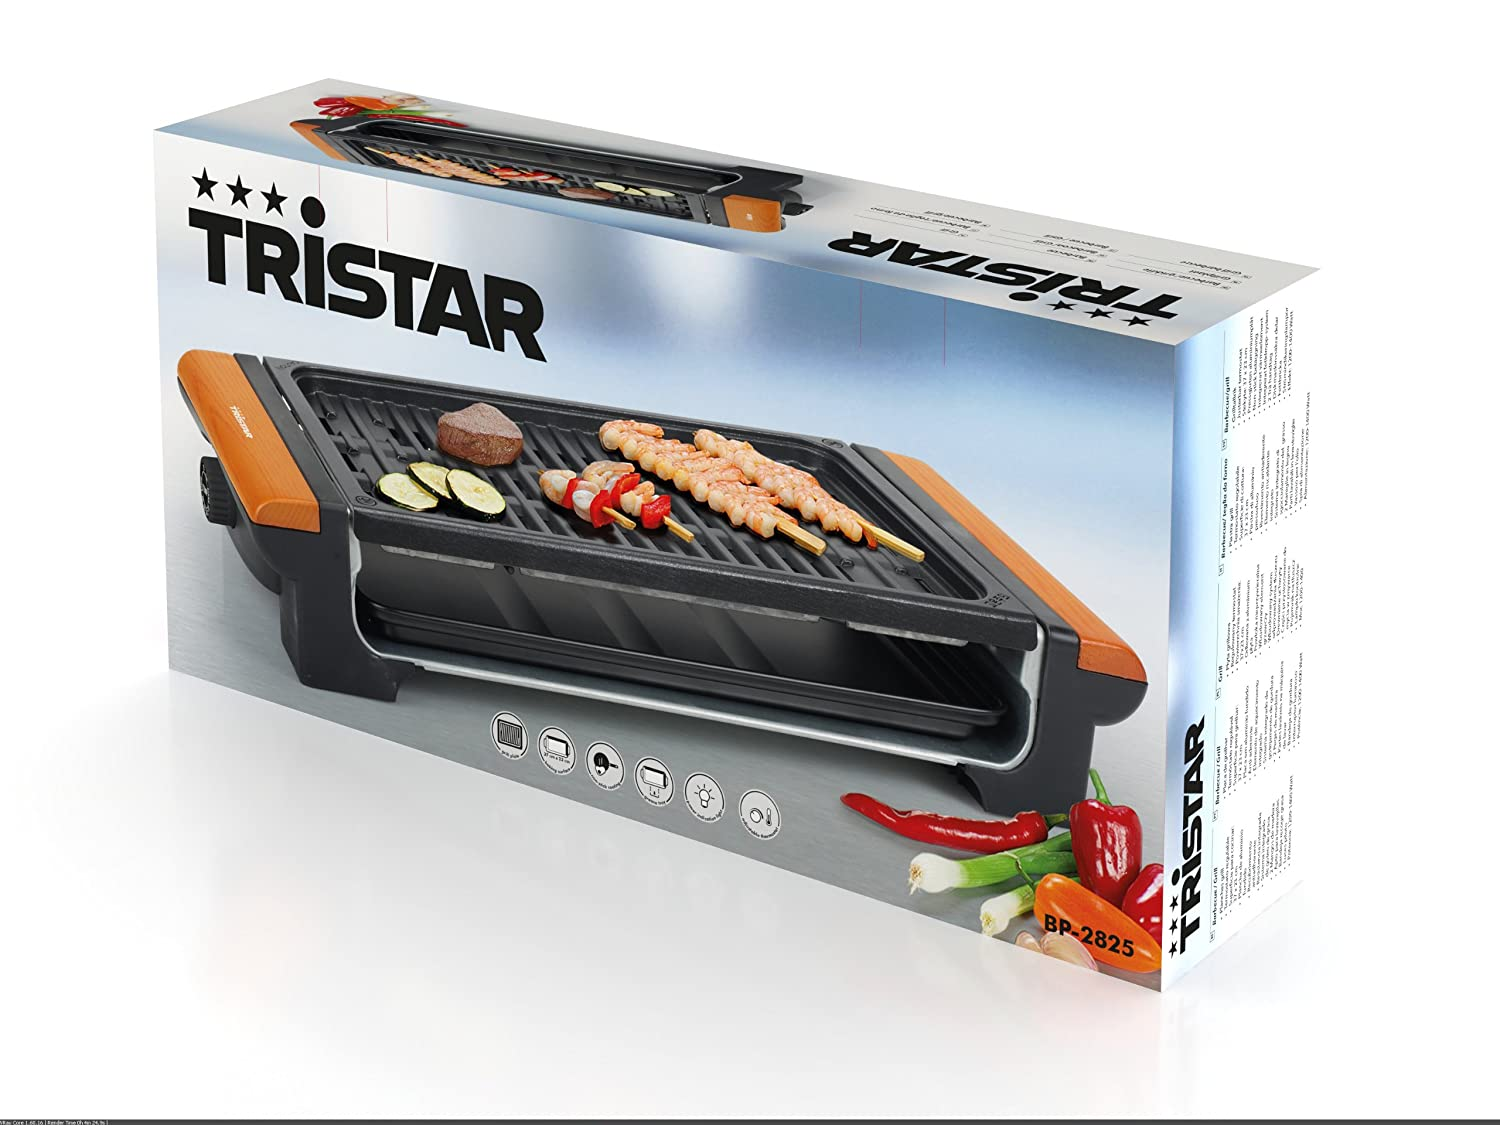 Amazon.com: SN Barbacoa Grill Tristar BP2825 Placa Aluminio Fundido: Home & Kitchen